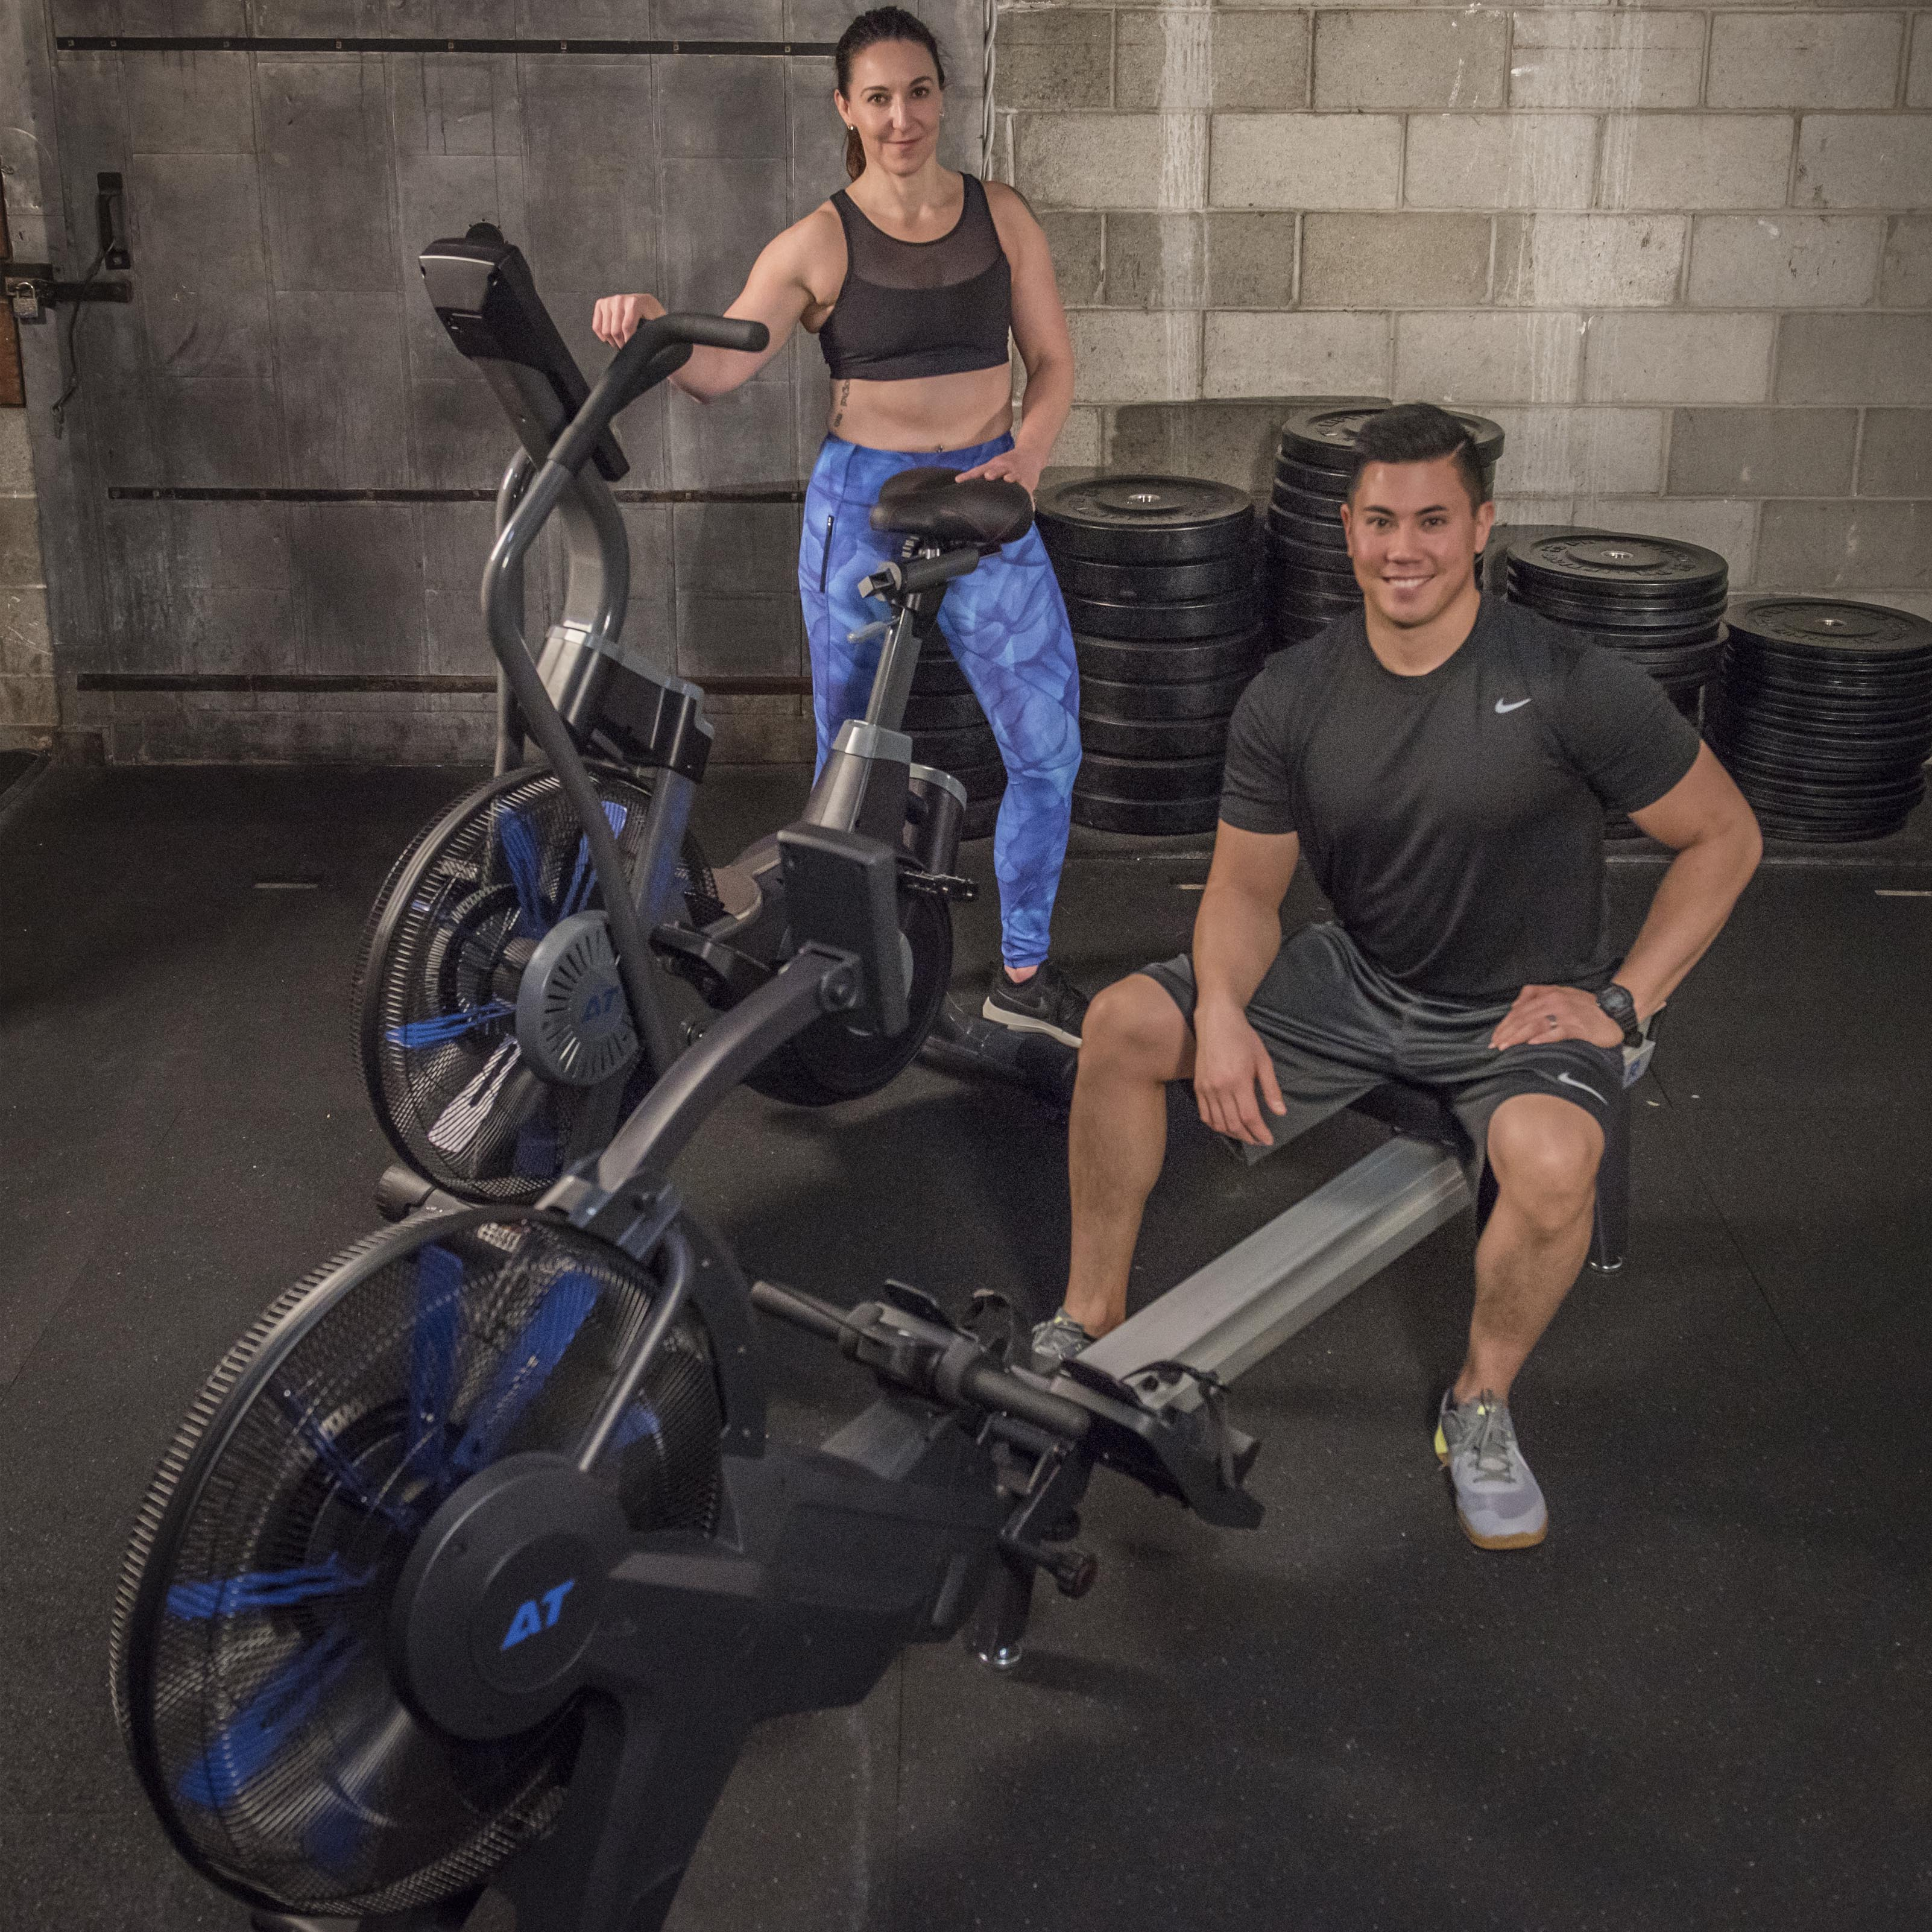 AirTEK Fitness HIIT Air and Magnetic Rower and AirBike